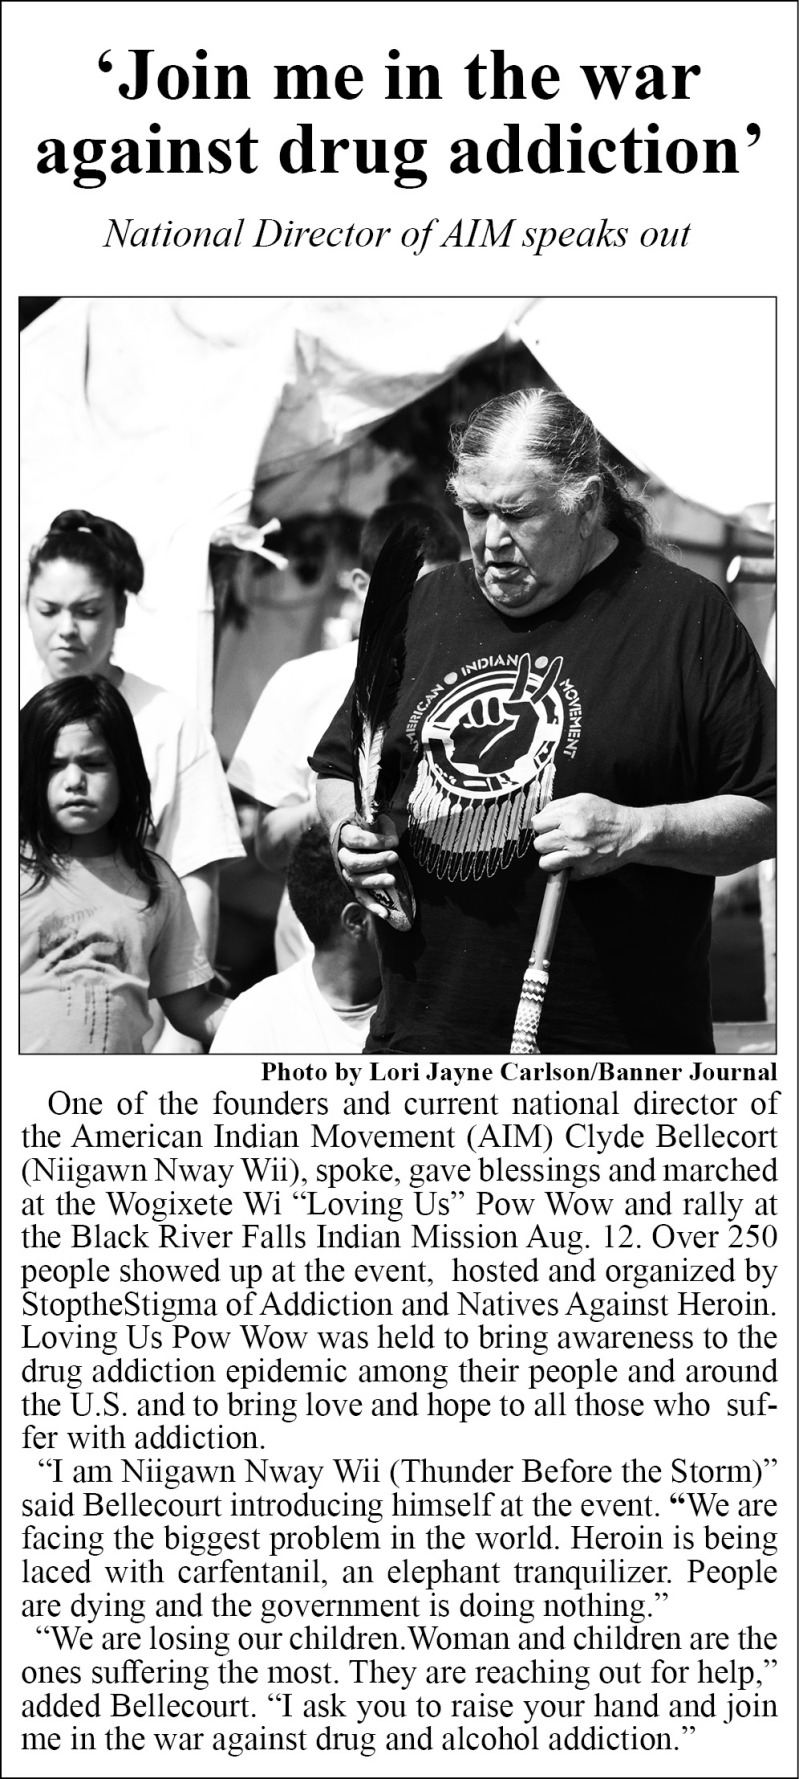 Clyde Bellecourt at Loving Us Pow Wow